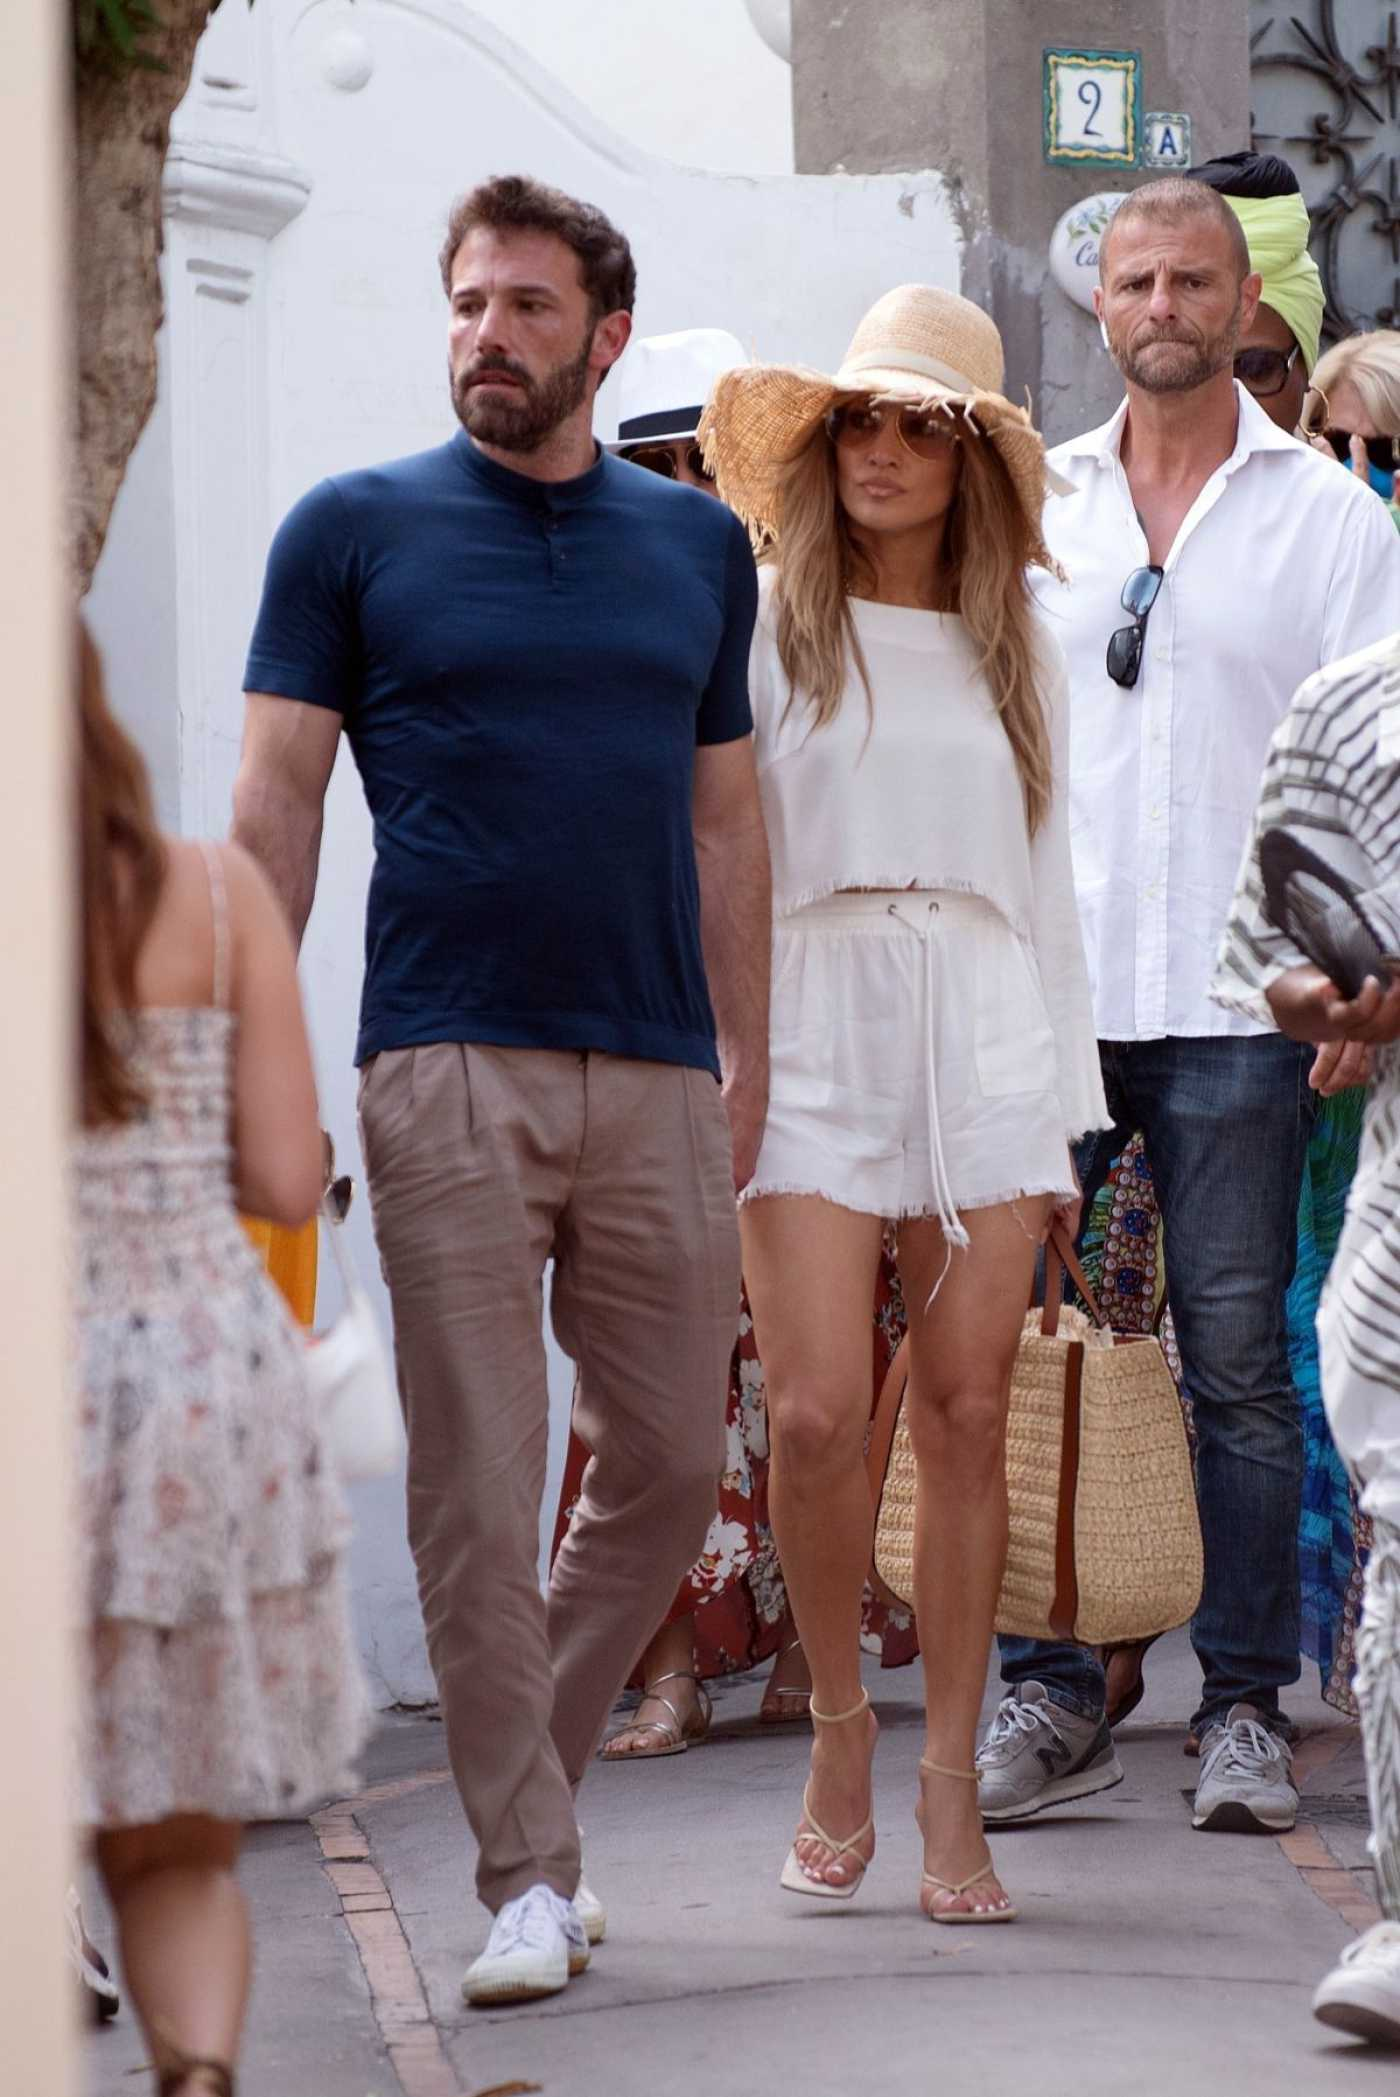 Jennifer Lopez in a White Shorts Was Seen Out with Ben Affleck in Capri, Italy 07/27/2021